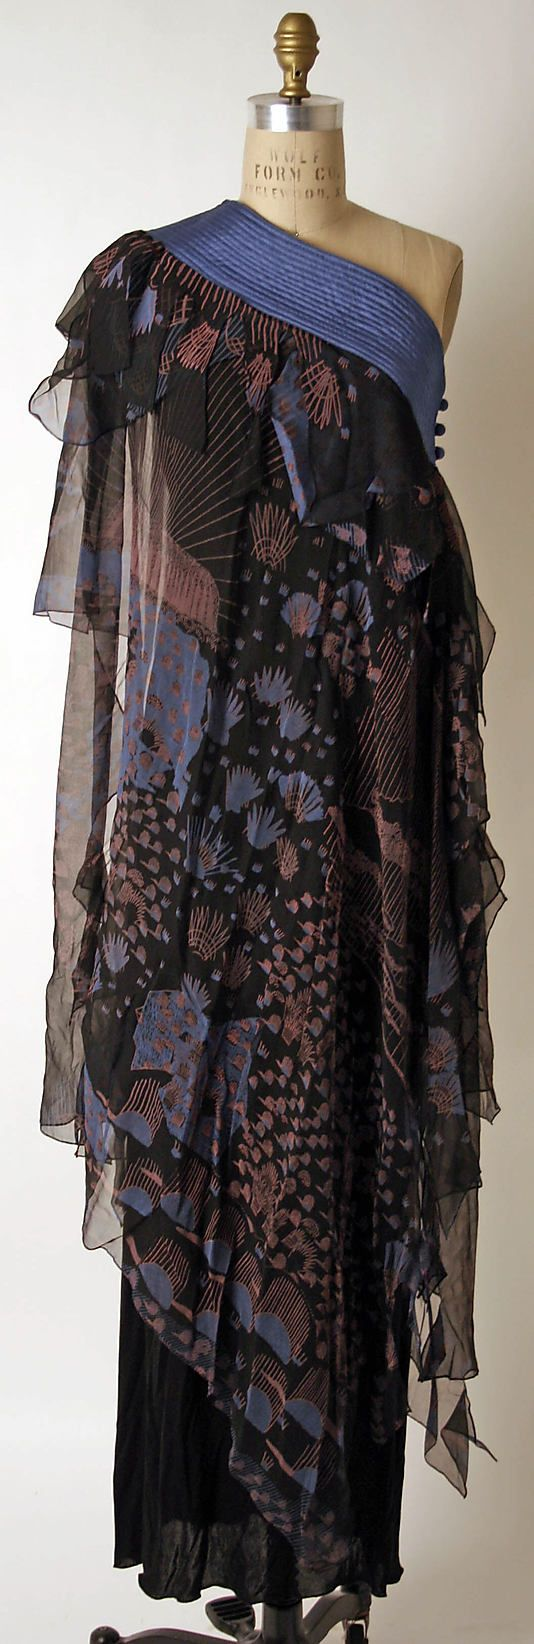 1974 Zandra Rhodes Evening dress Metropolitan Museum of Art, NY See more museum vintage dresses at http://www.vintagefashionandart.com/dresses